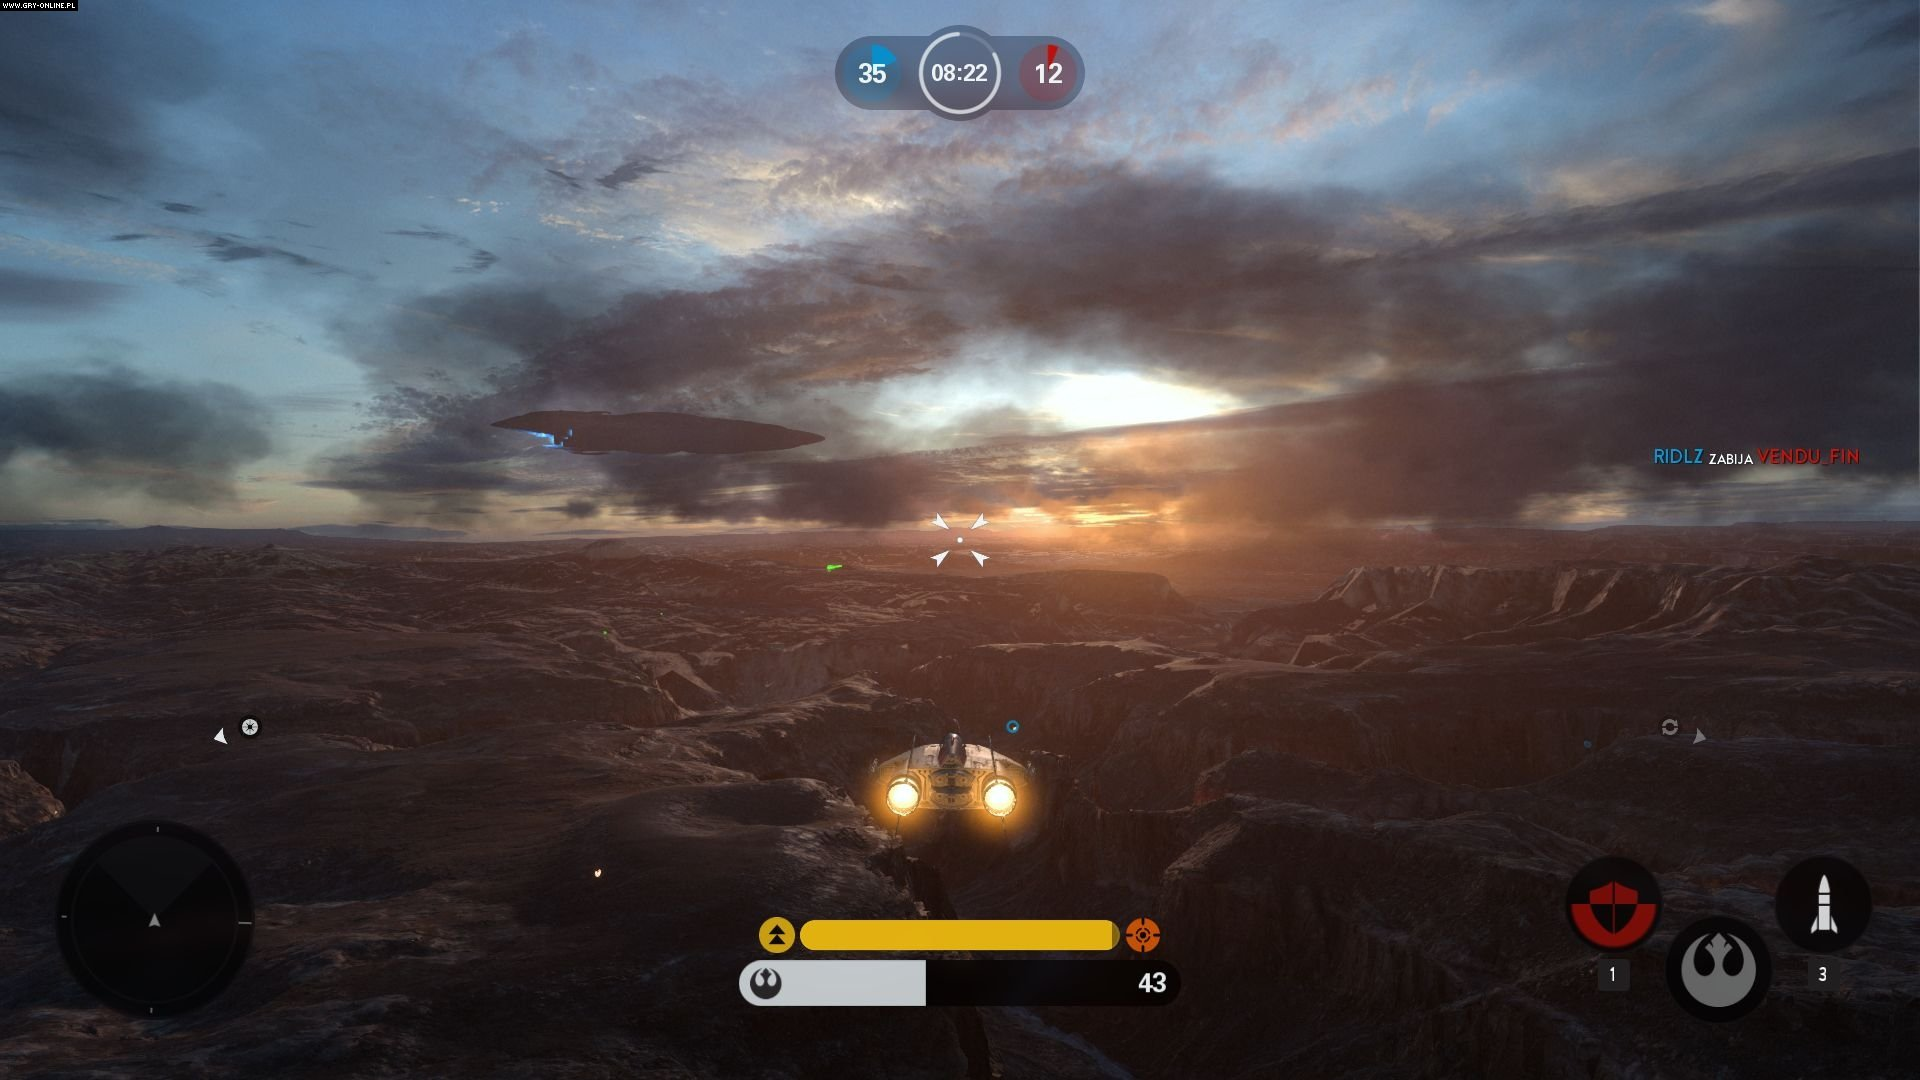 Star Wars: Battlefront PC Gry Screen 7/46, EA DICE / Digital Illusions CE, Electronic Arts Inc.